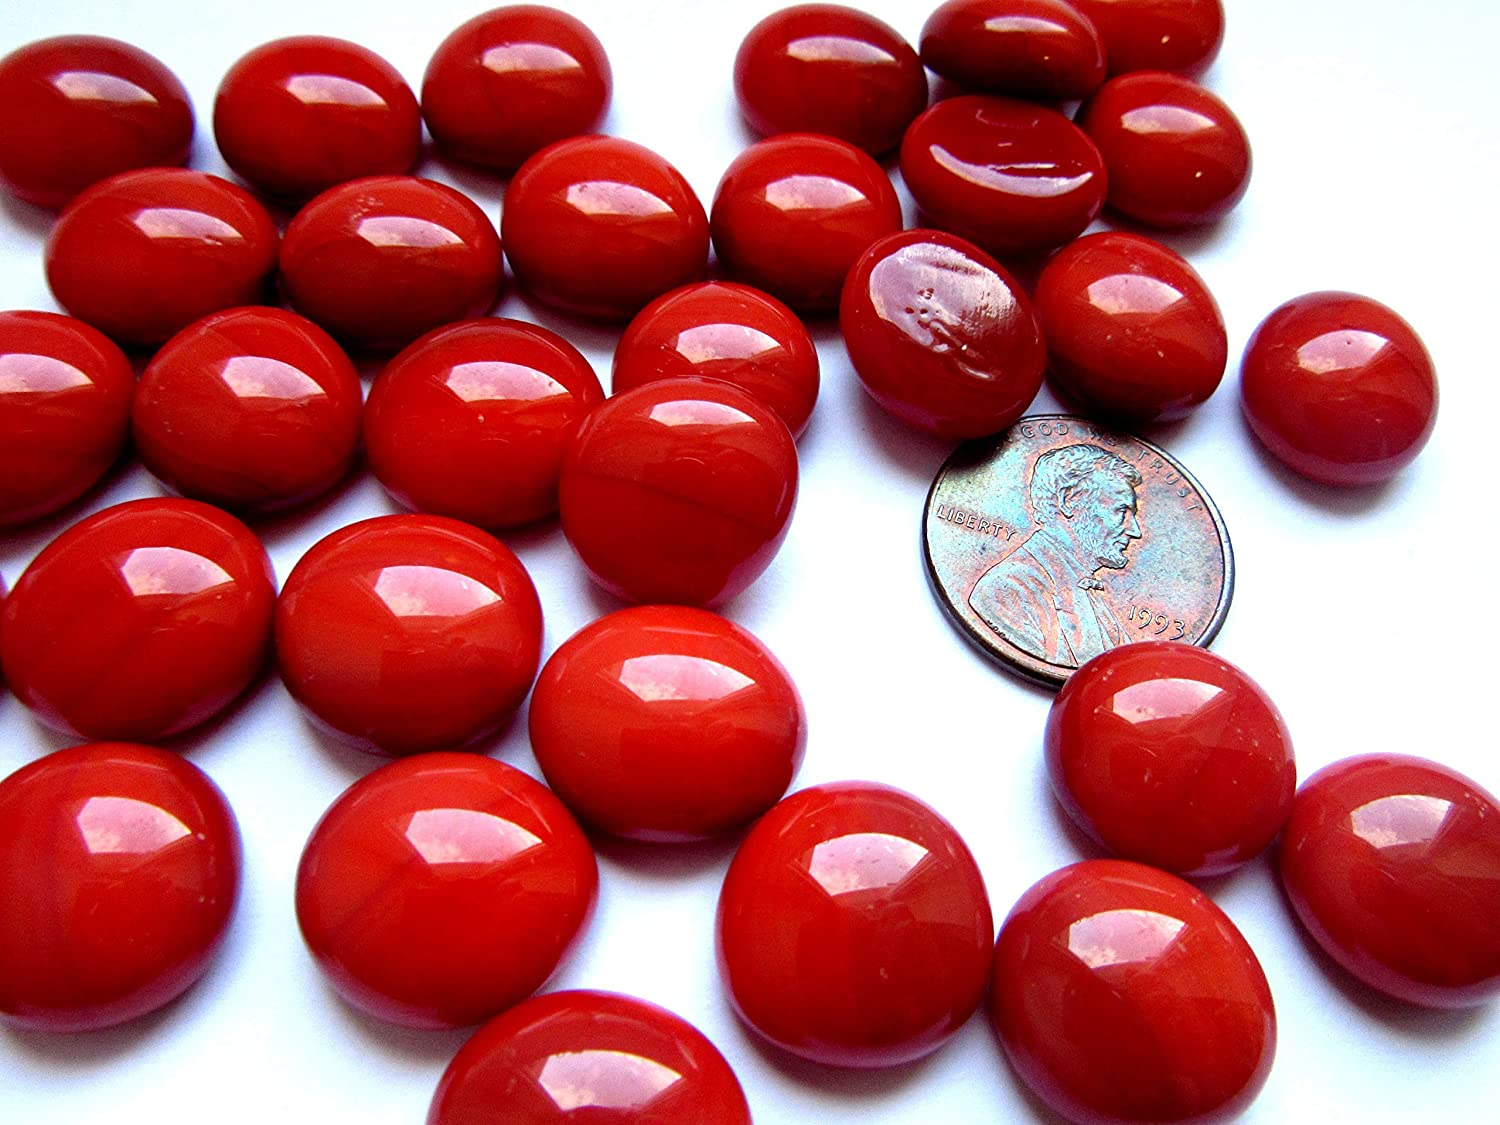 50 Mini Bright Red Glass Gems, 11-14 mm Flat Back Glass Marbles,Vase Fillers, Mosaic Tiles, Small